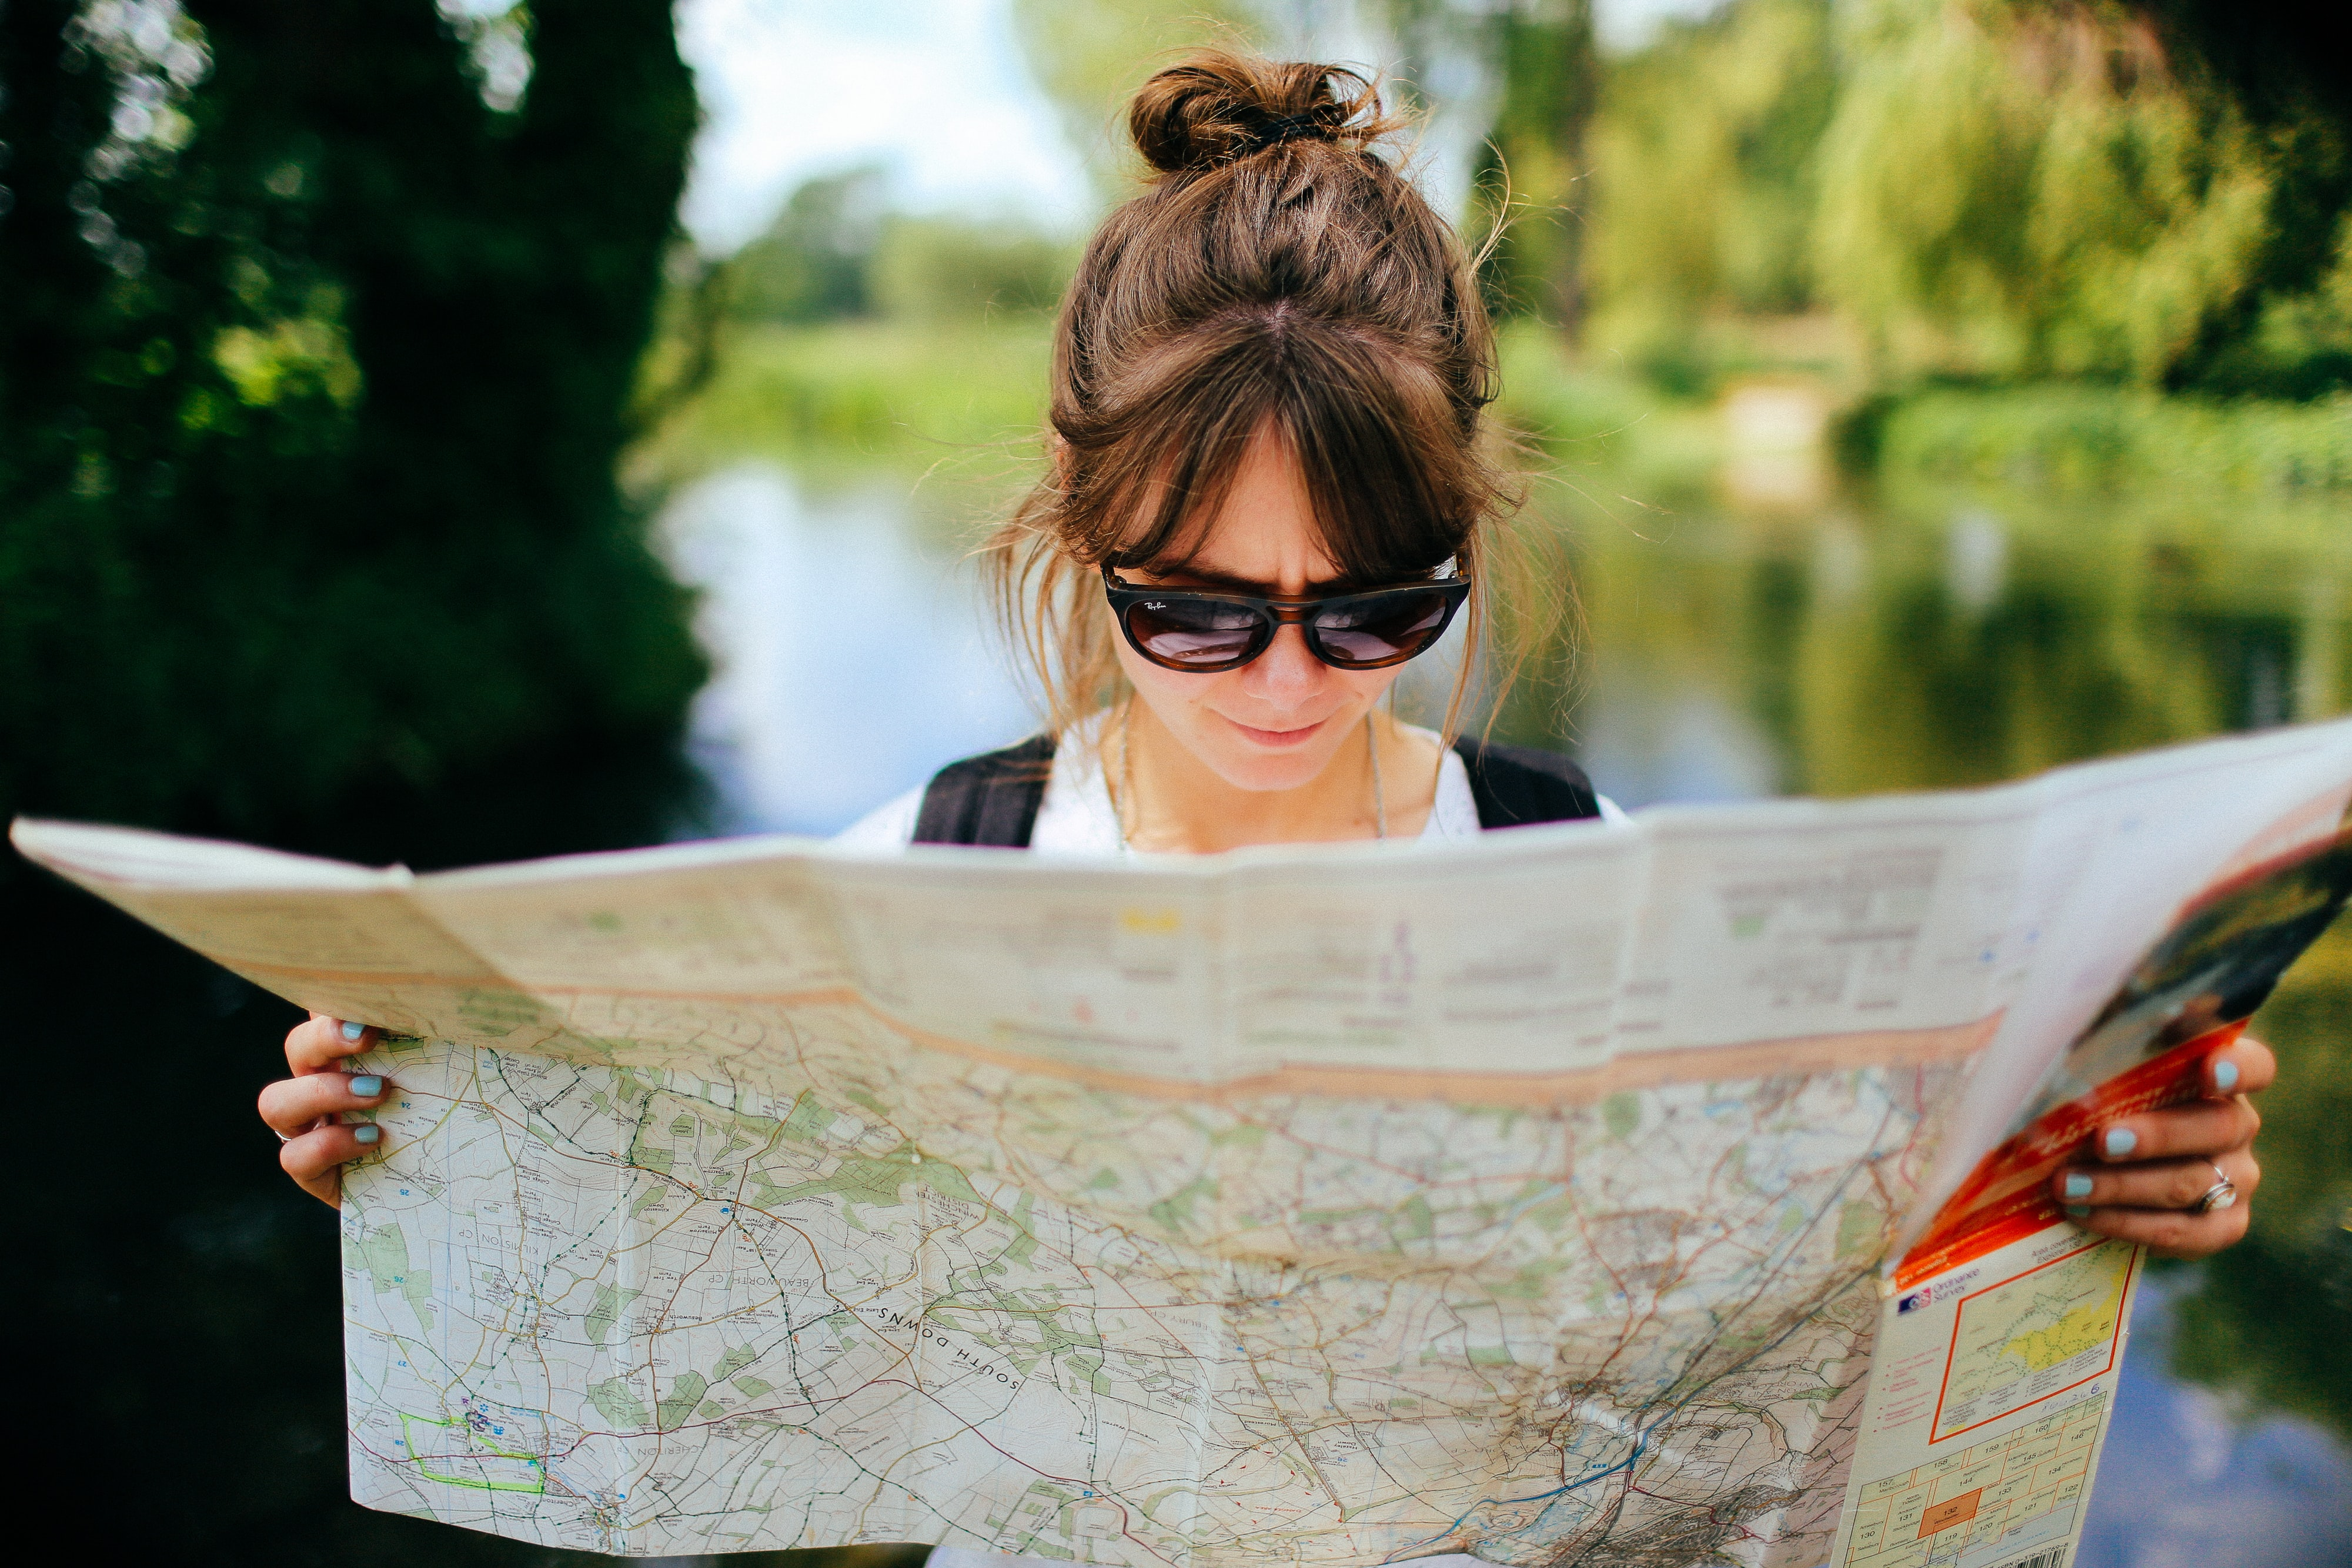 A woman standing outside with green trees and a lake in the background that is blurred, she is wearing sunglasses and she is holding a map open that spans across the entire bottom of the image.